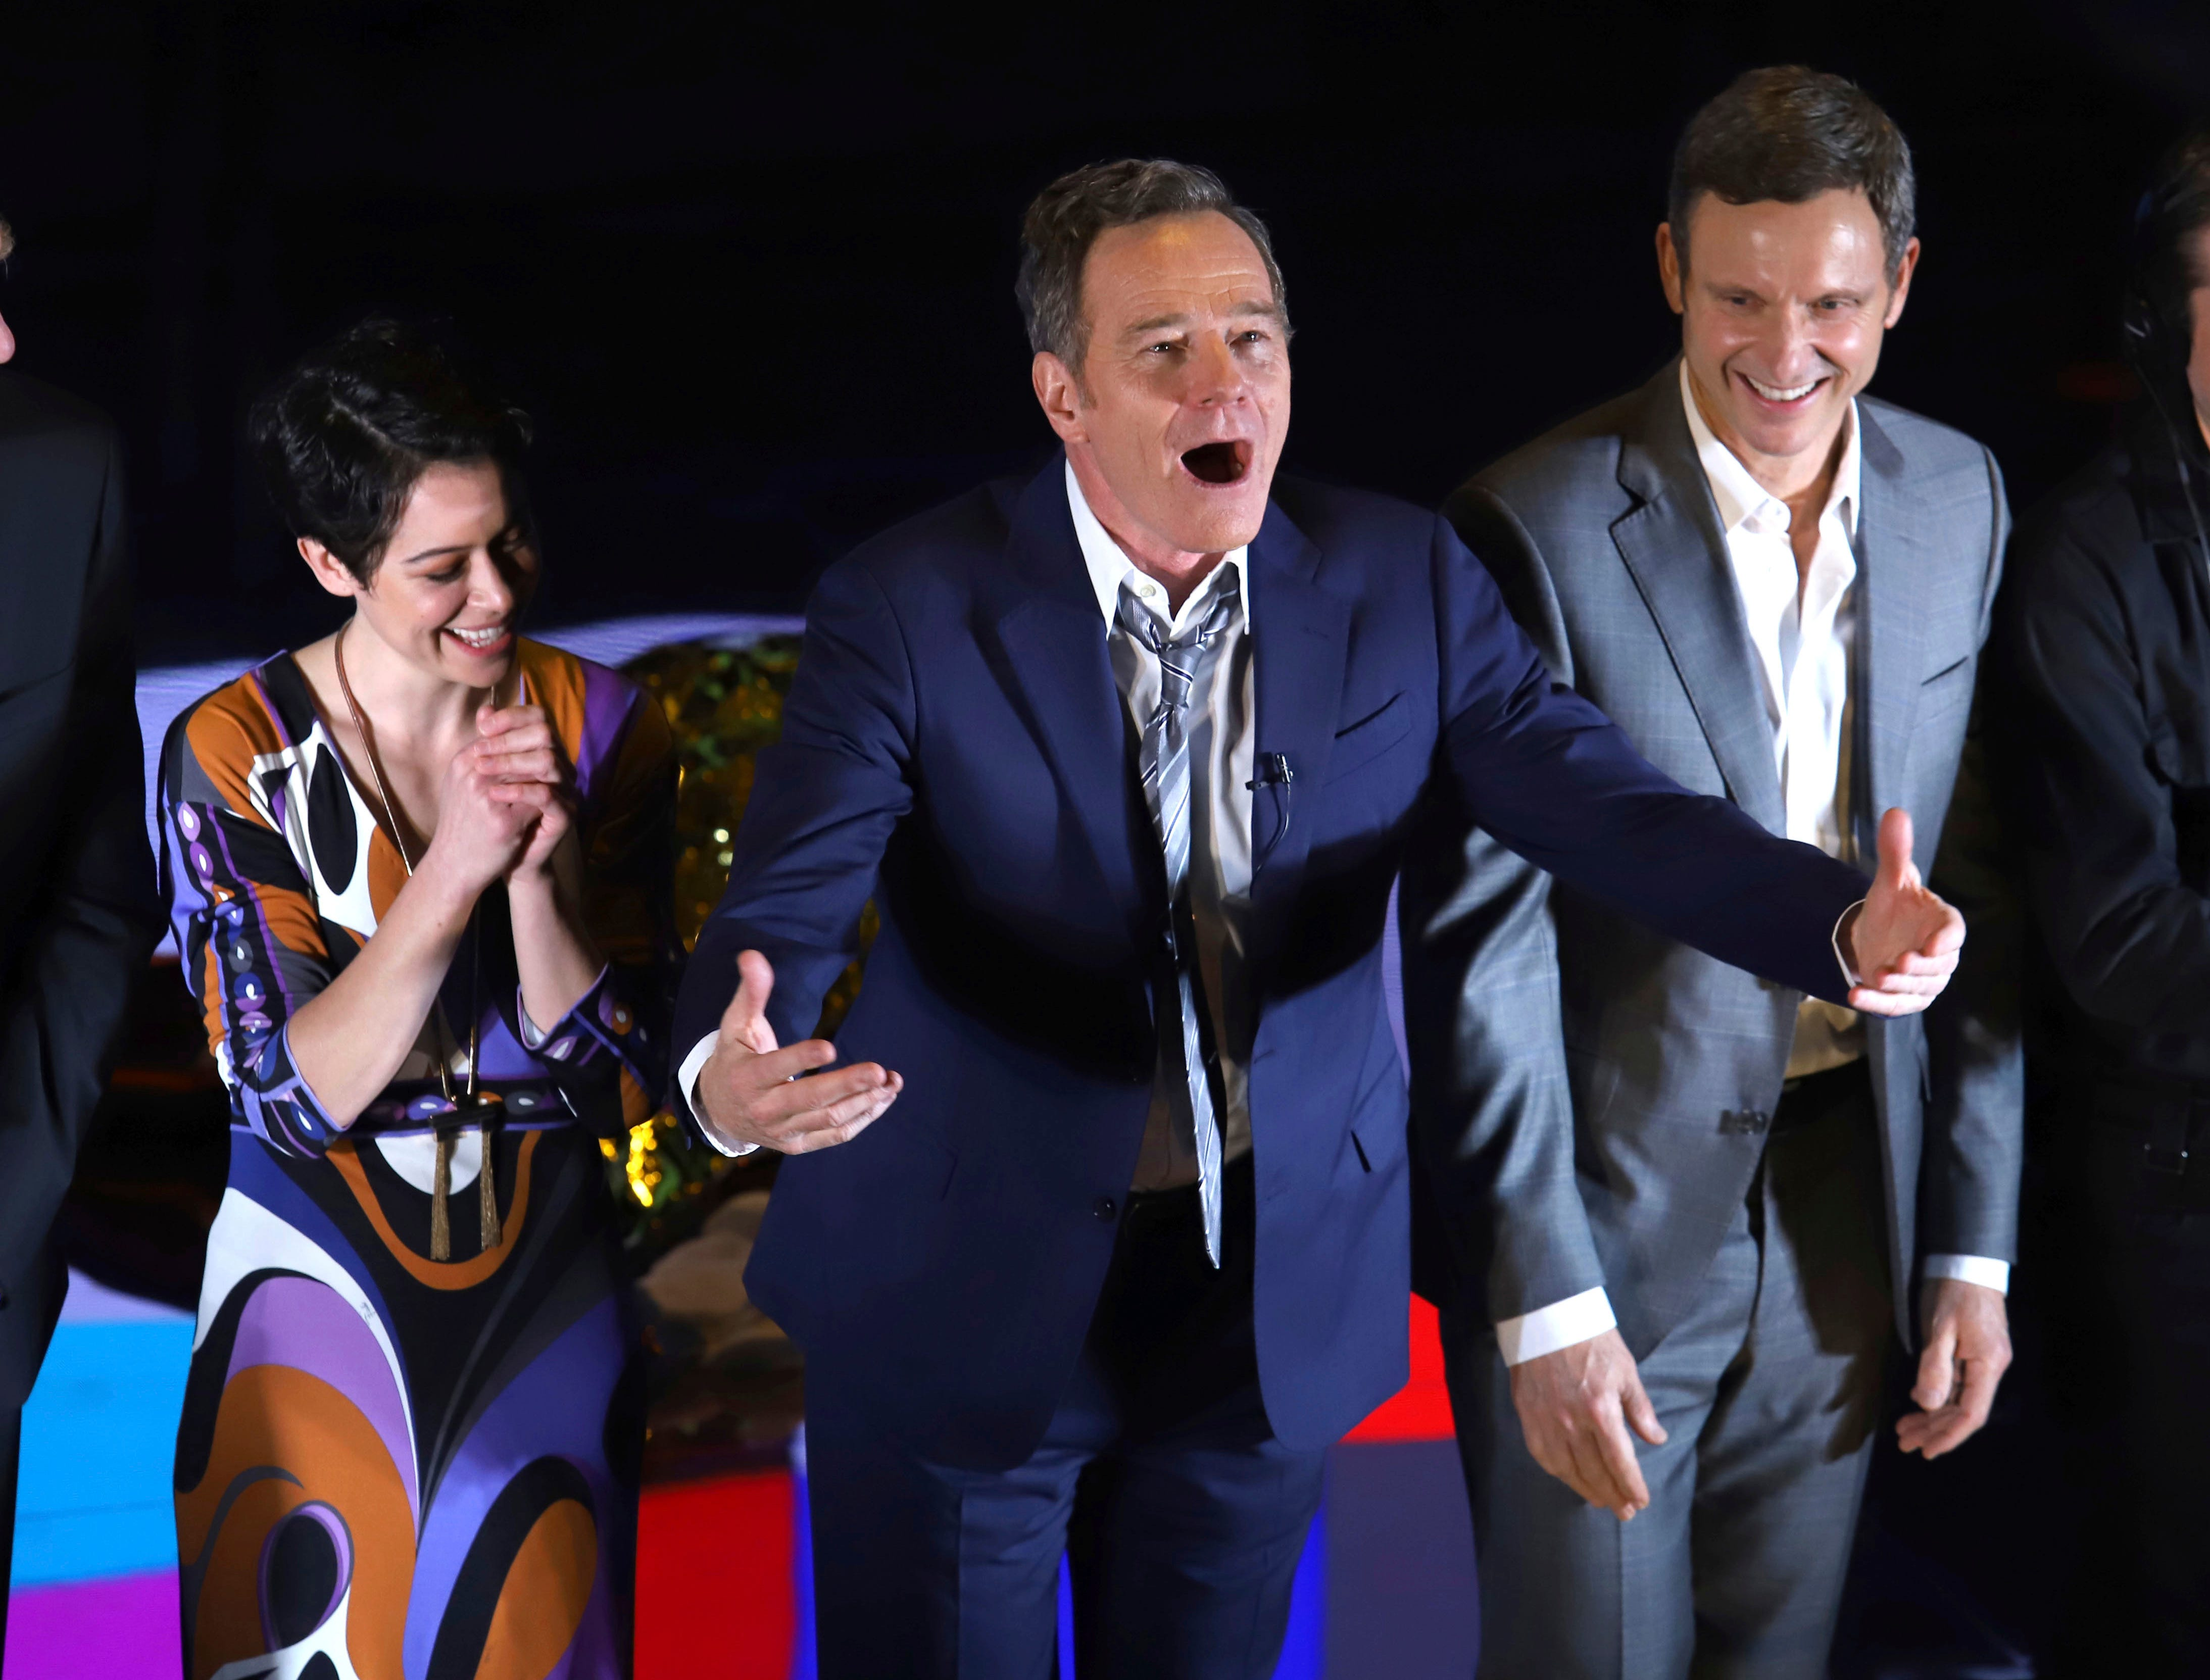 """Bryan Cranston , flanked by Tatiana Maslany and Tony Goldwyn, greets the audience during the curtain call for the Broadway opening night of """"Network"""" at the Belasco Theatre on Thursday, Dec. 6, in New York."""